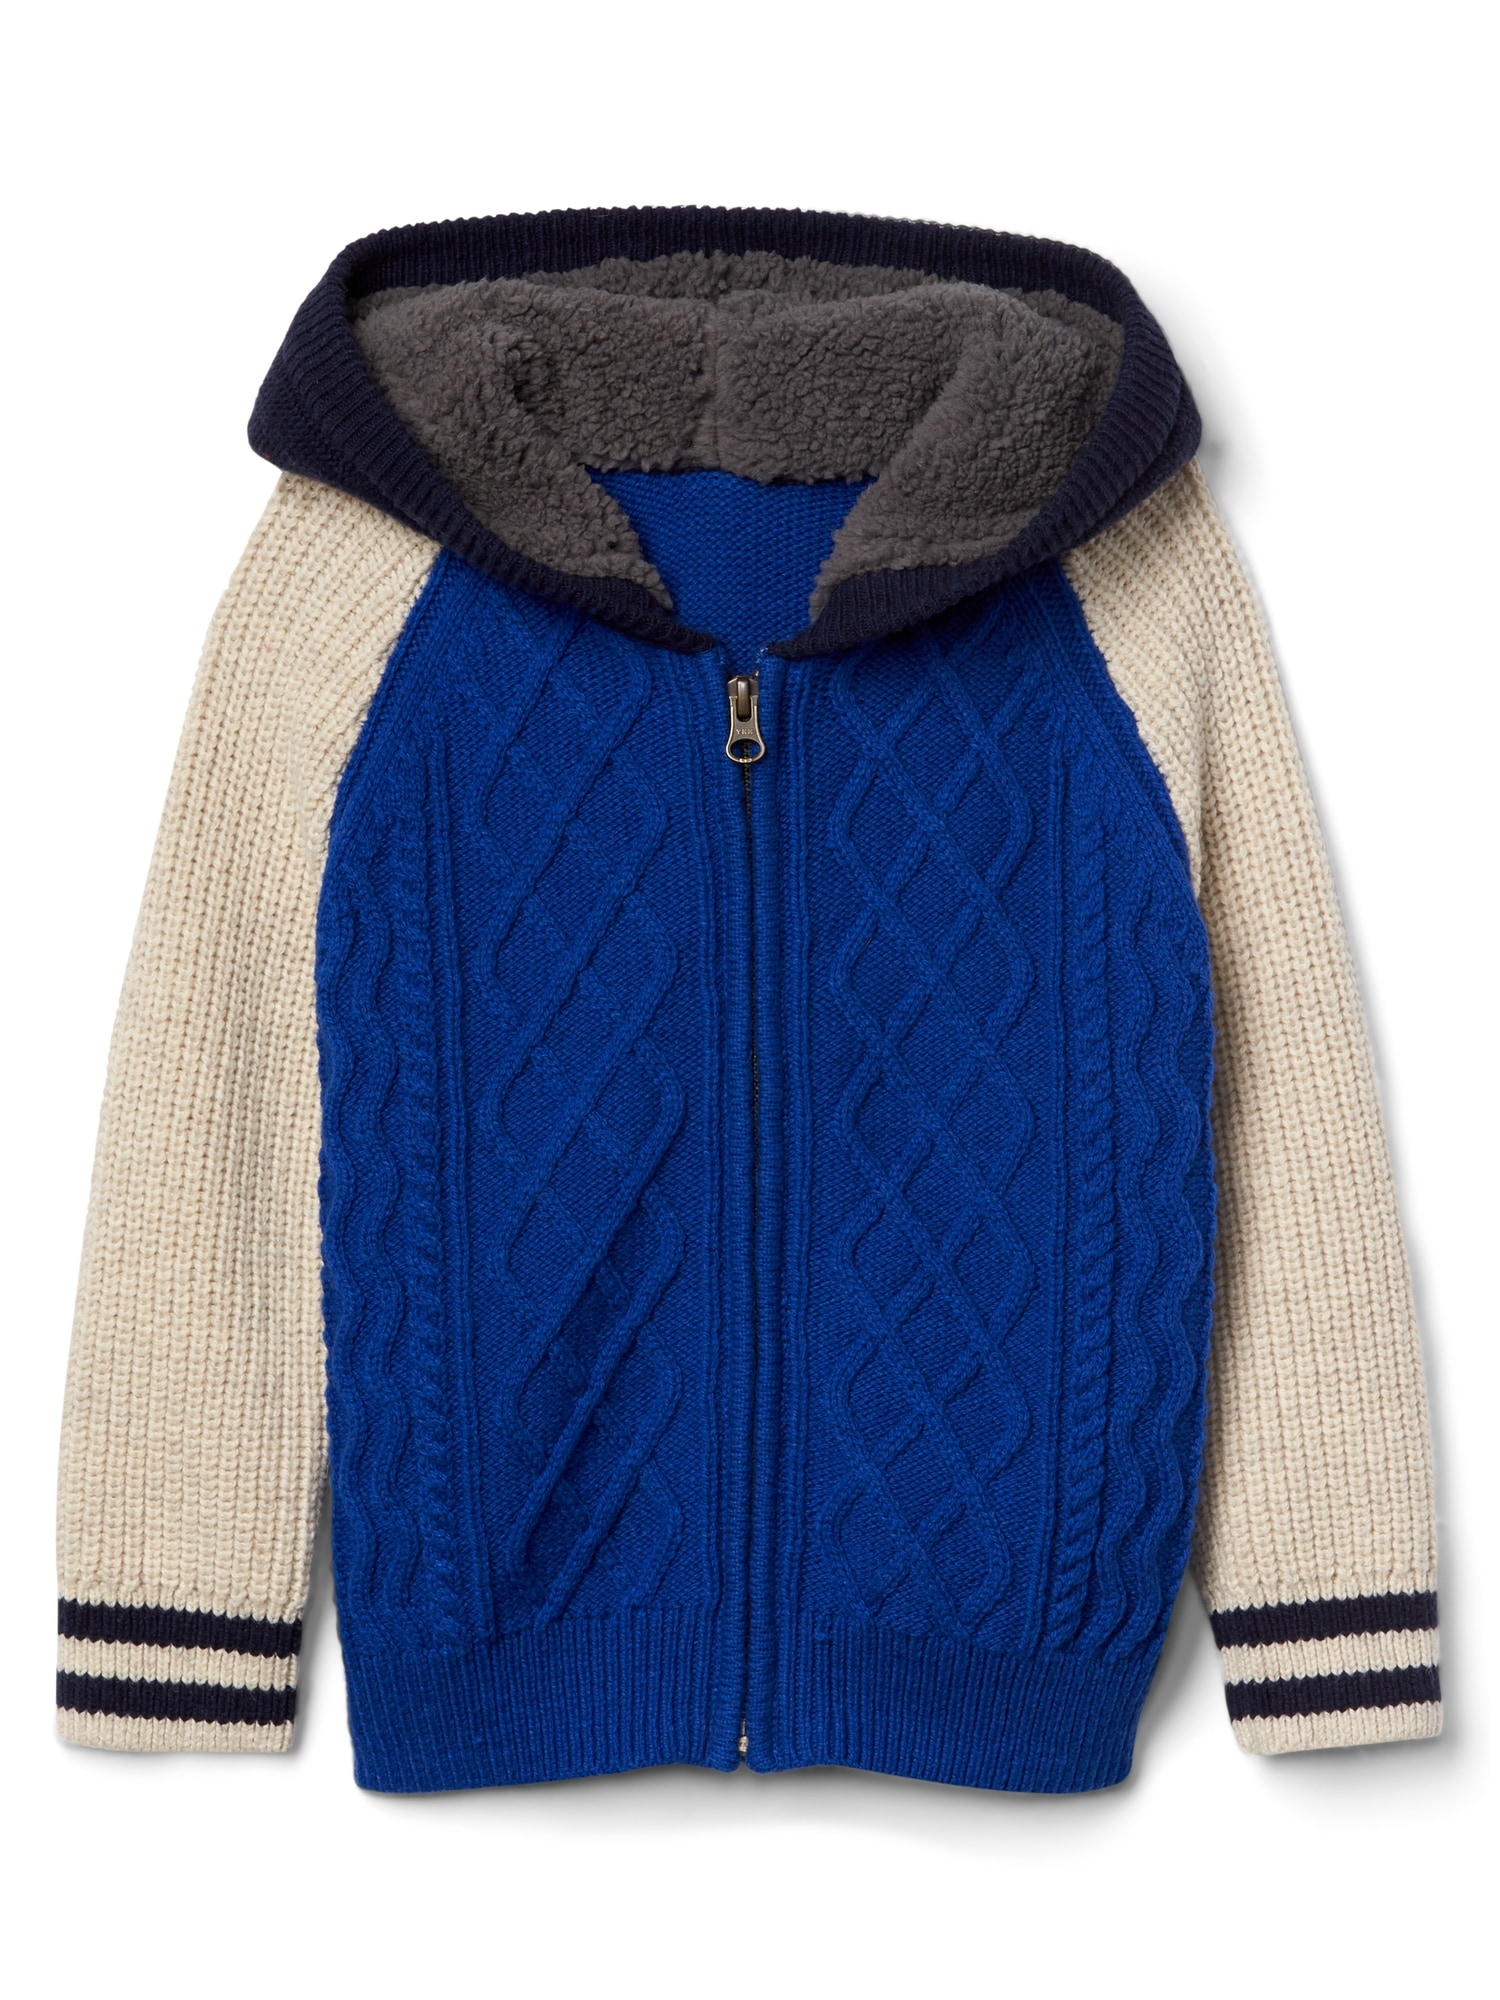 Cozy cable-knit sweater hoodie | Gap